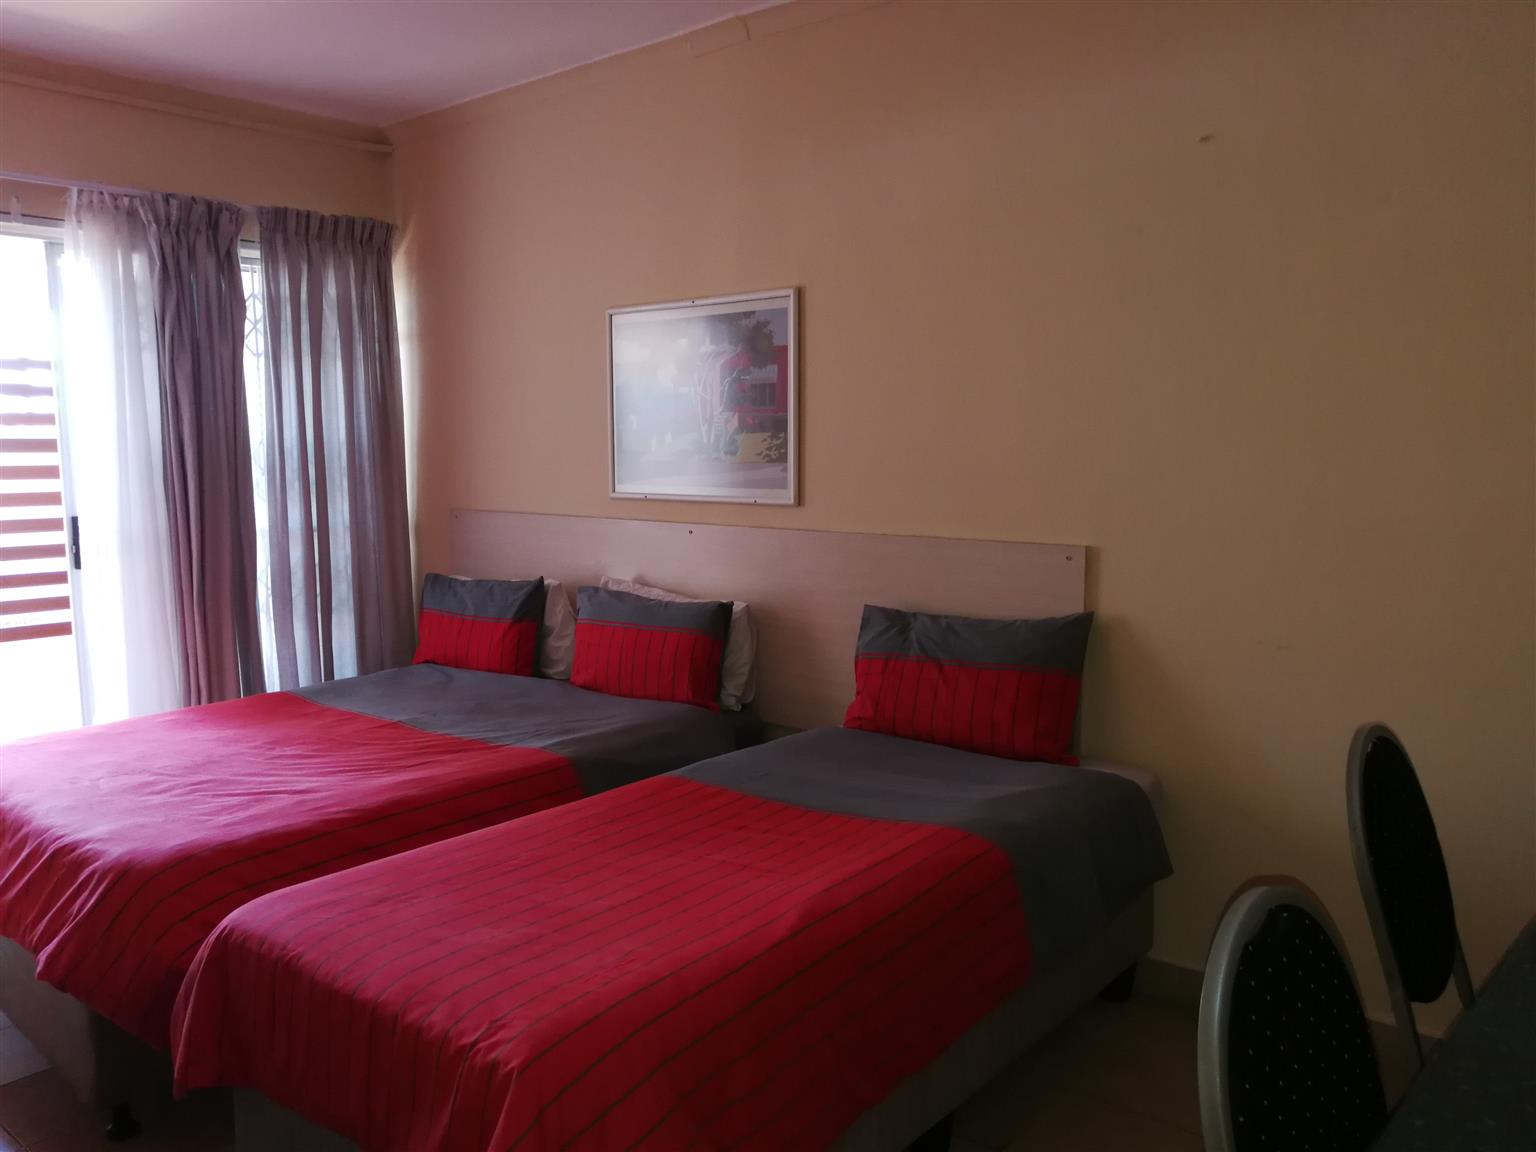 Bluff Holiday Accommodation Durban 21 December - Jan 2020